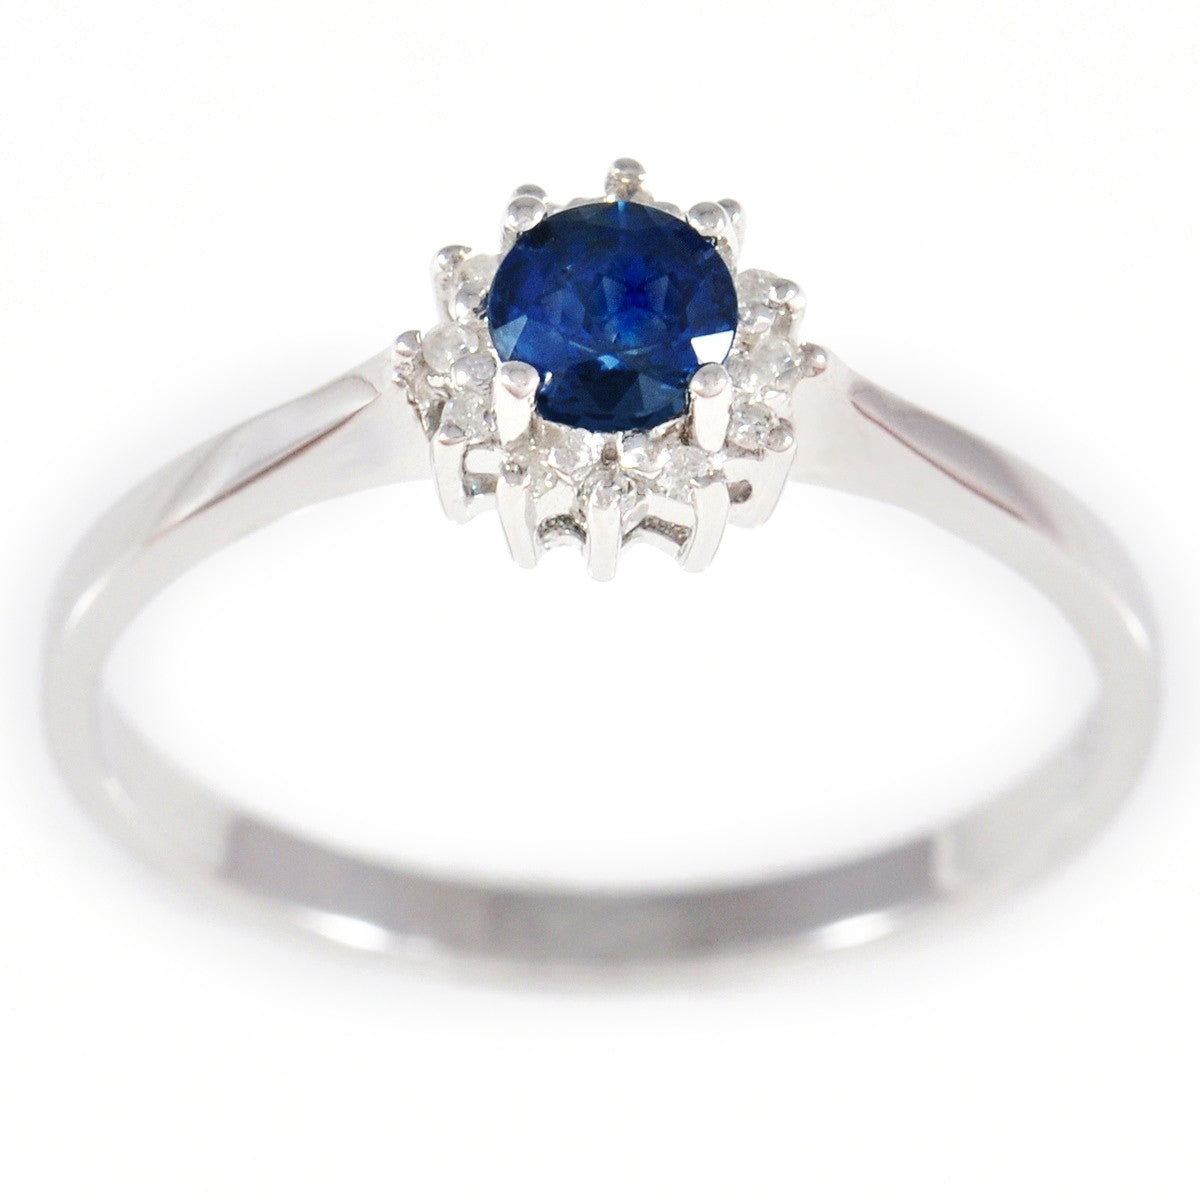 9K SOLID WHITE GOLD 0.40CT NATURAL SAPPHIRE HALO RING WITH 12 DIAMONDS.